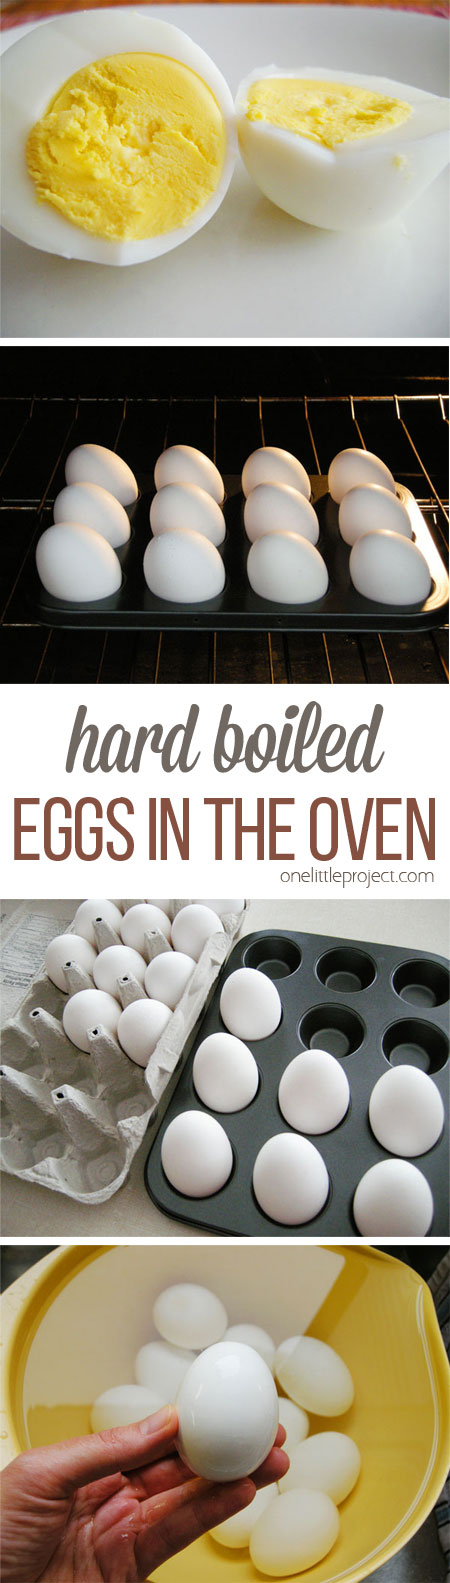 You can make BAKED hard boiled eggs in the oven in a muffin tin?! The eggs turn out perfectly and they're less likely to crack! Delicious and incredibly easy, especially for Easter eggs!